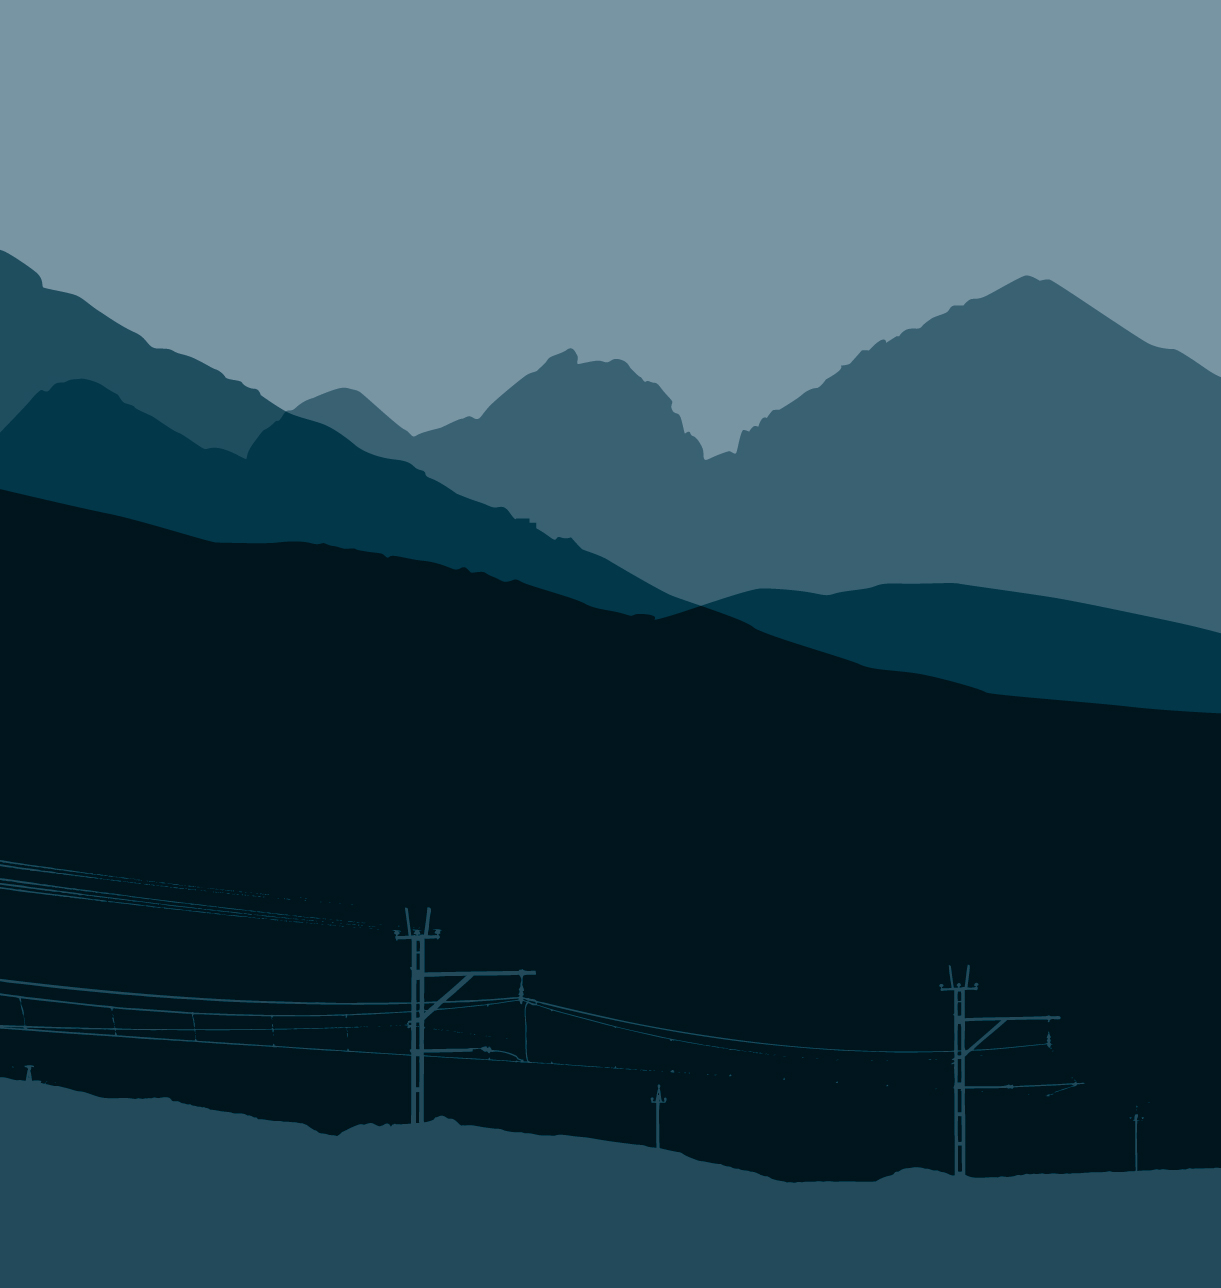 Stylized landscape vector illustration in tones of blue